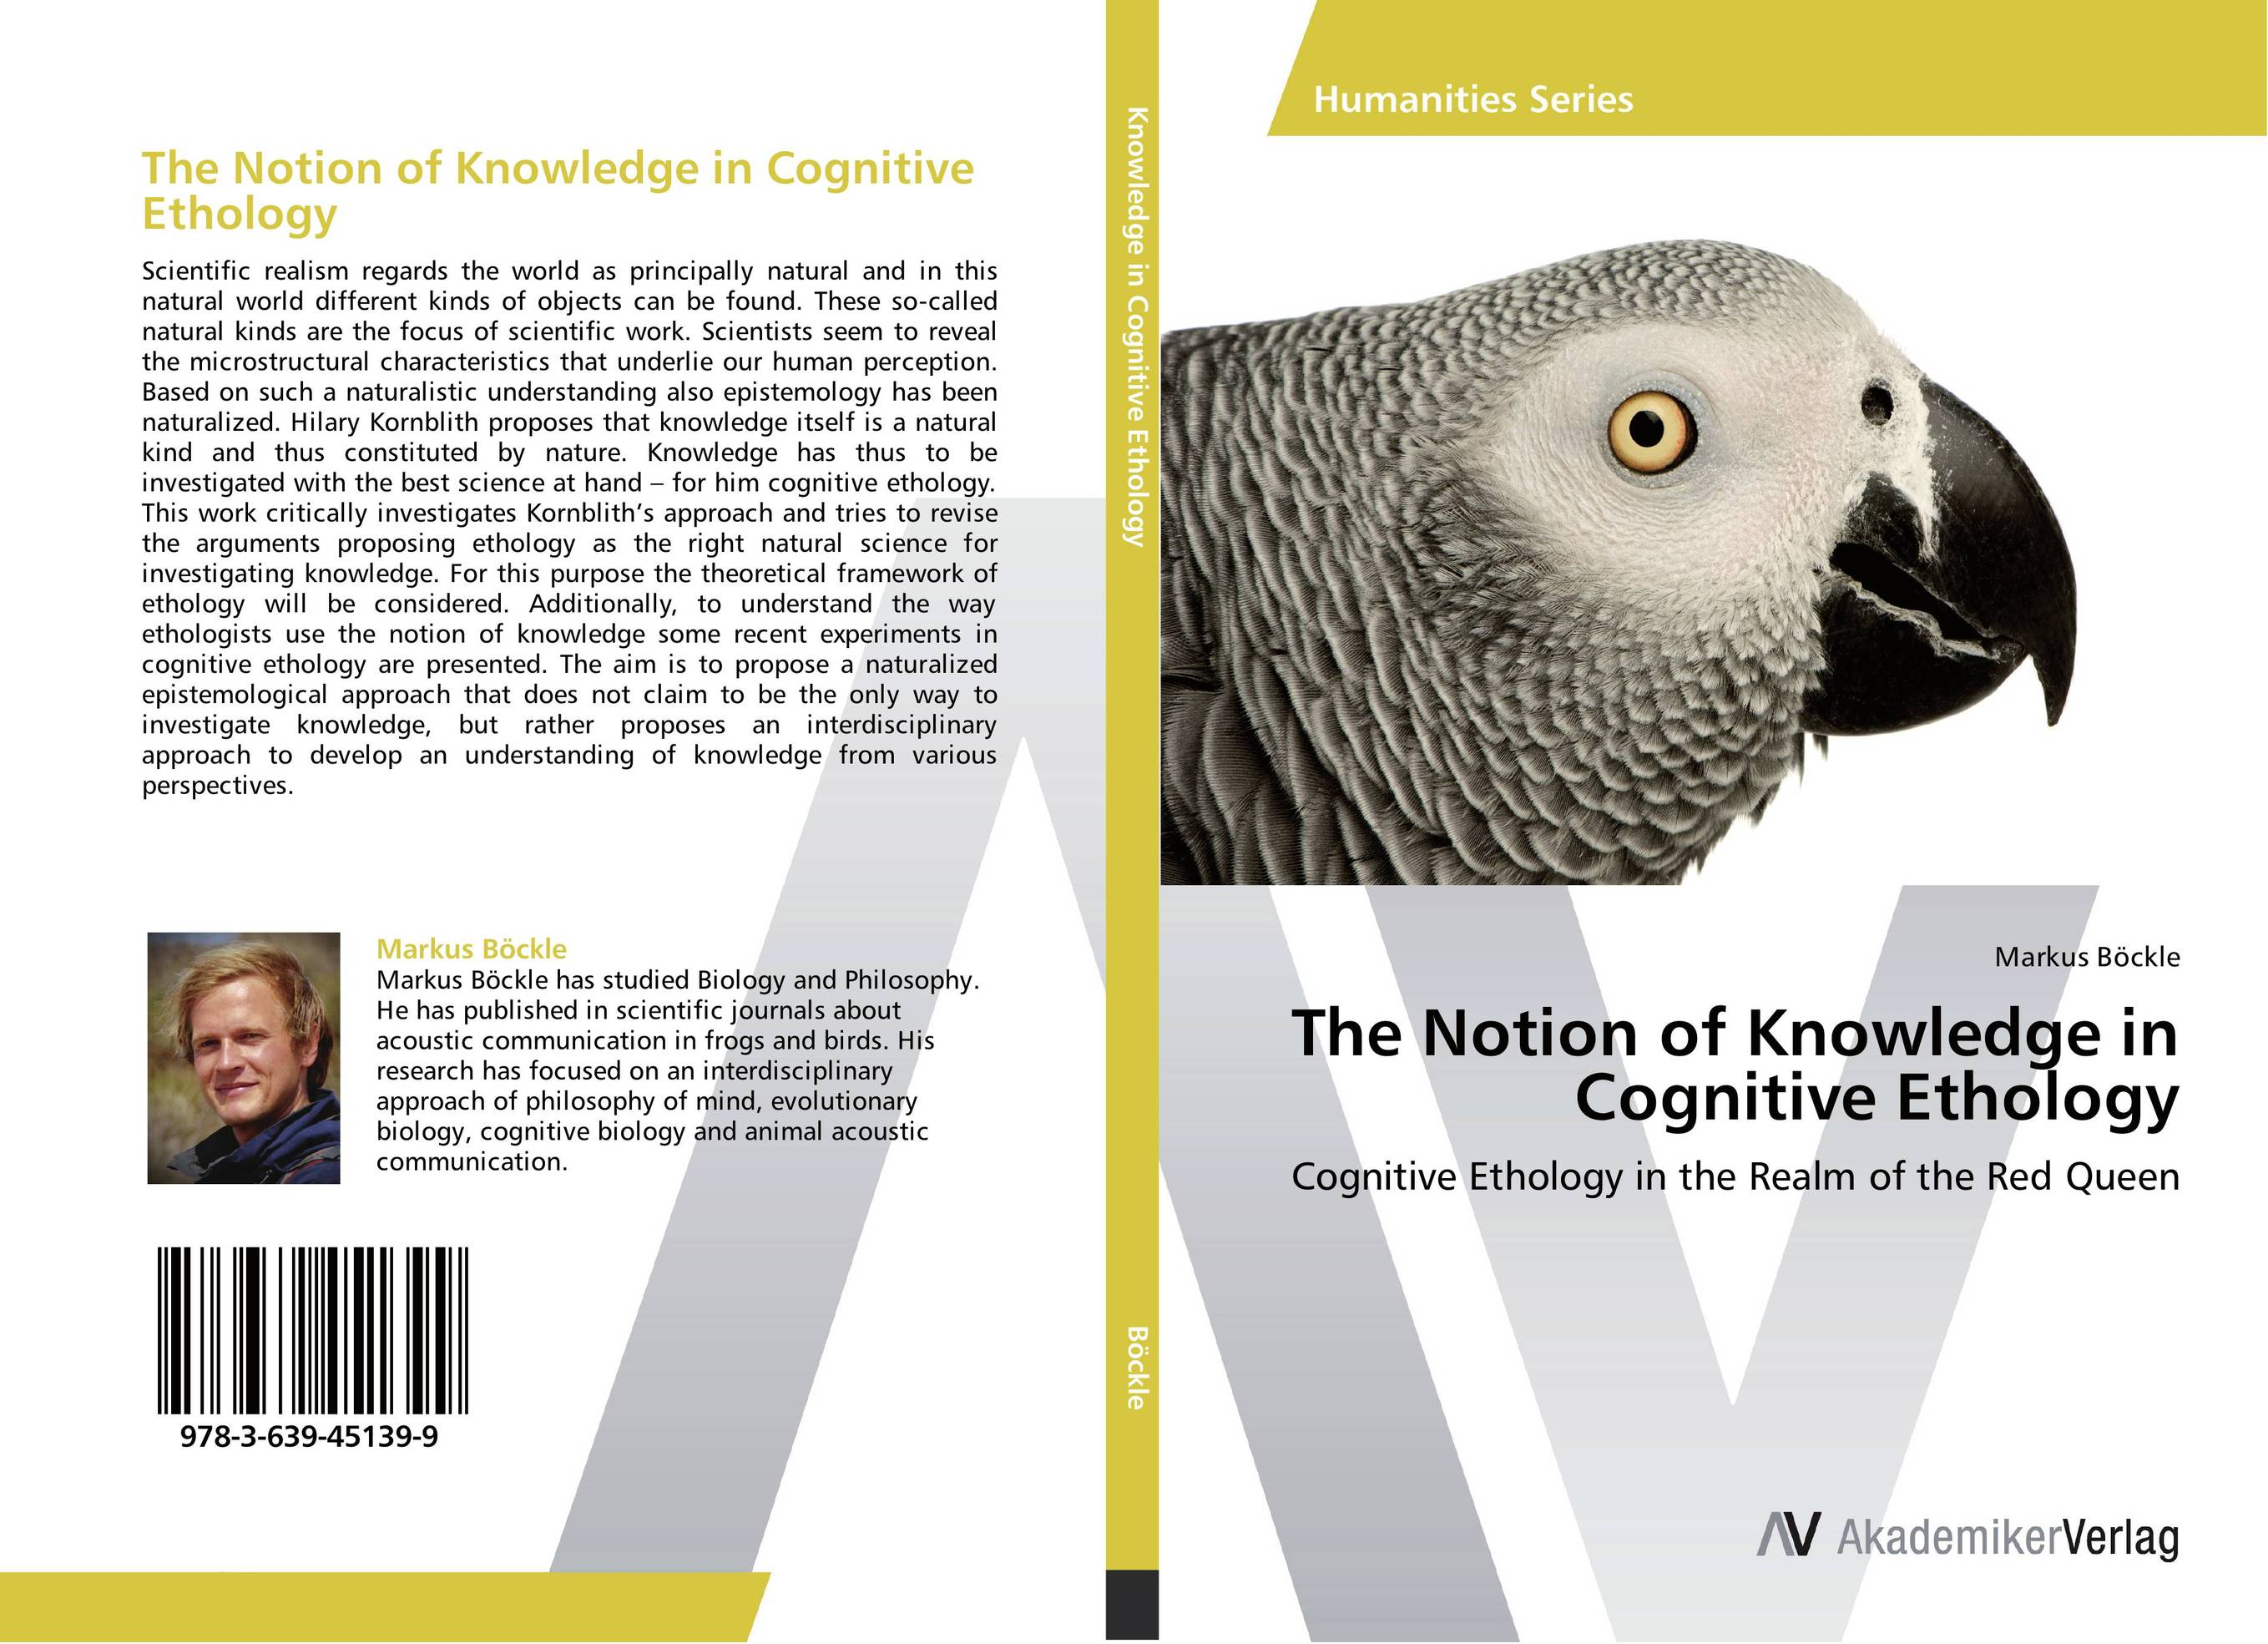 The Notion of Knowledge in Cognitive Ethology manage enterprise knowledge systematically